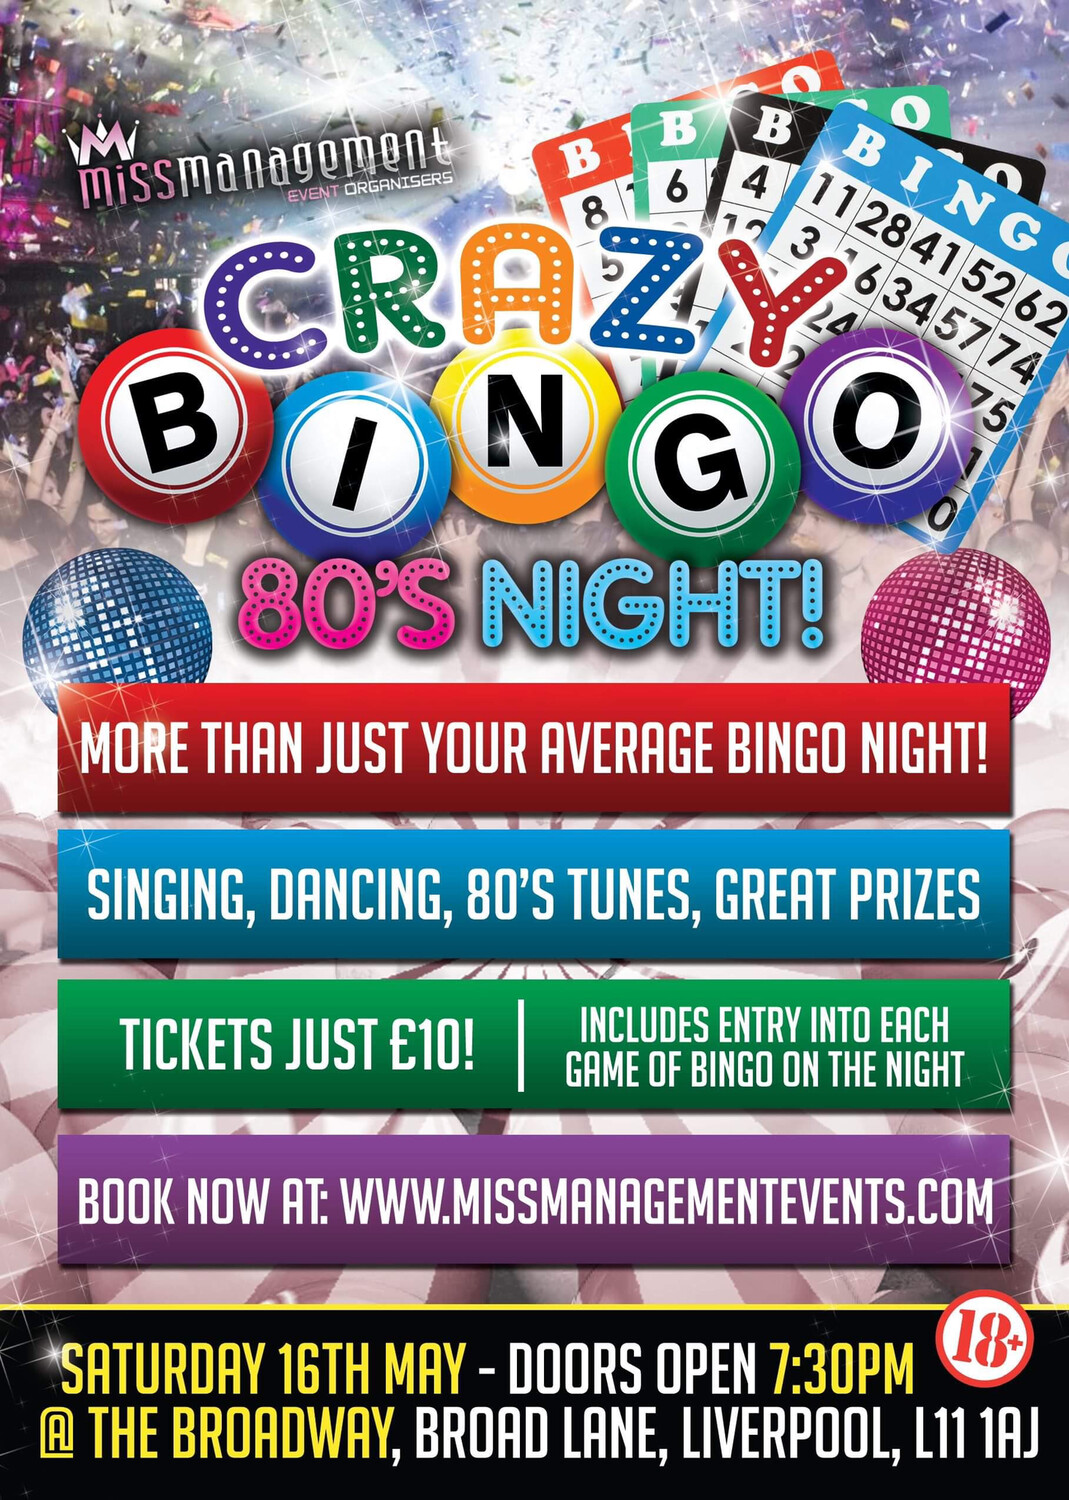 (CB003) 'Crazy Bingo' 80's Theme: Table For Three (Liverpool) Saturday 16th May 2020